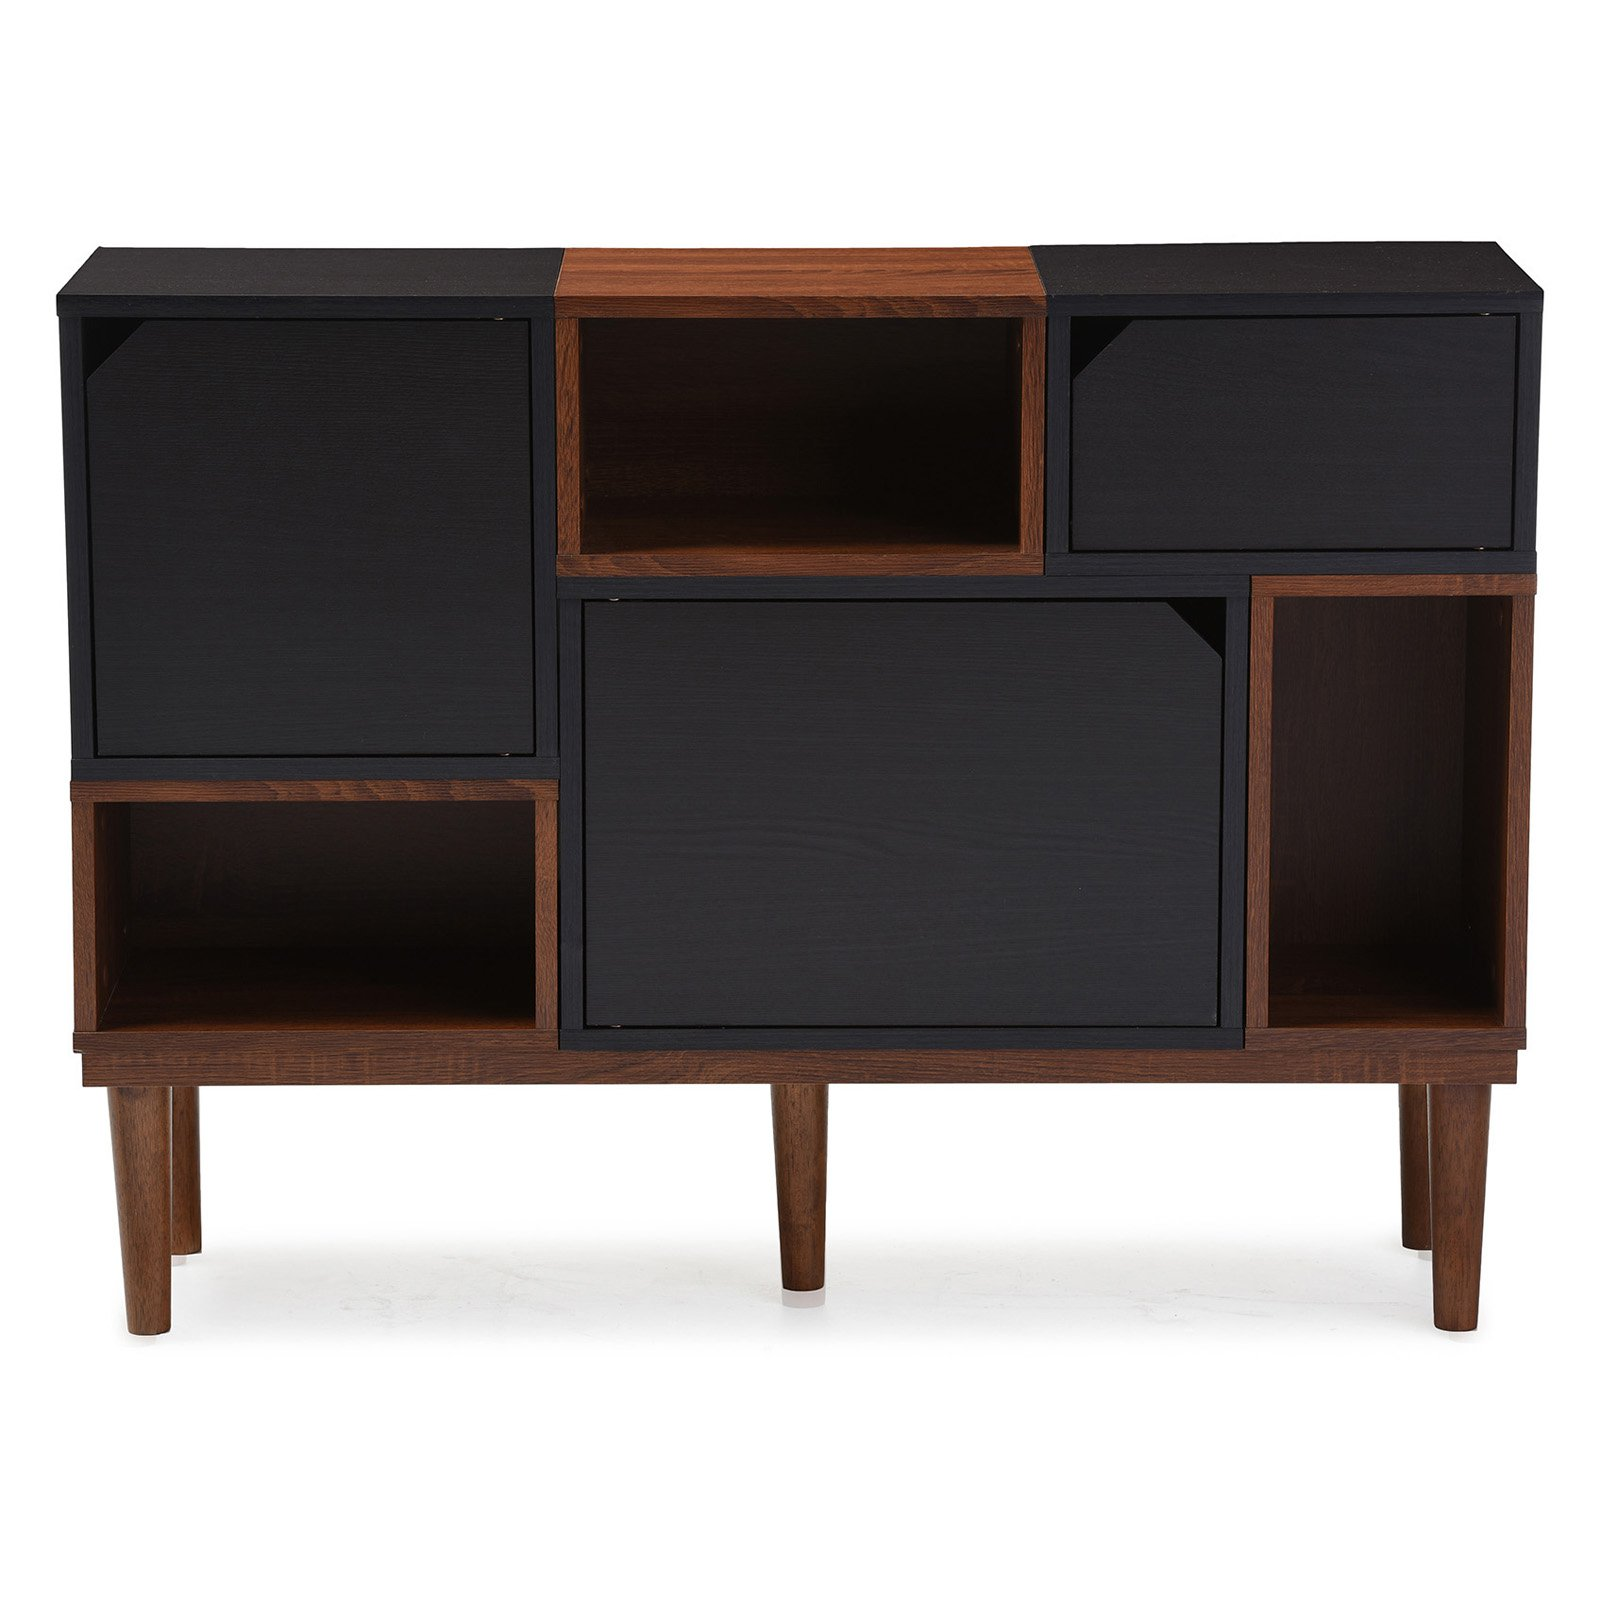 Baxton Studio Anderson Sideboard Cabinet by Wholesale Interiors